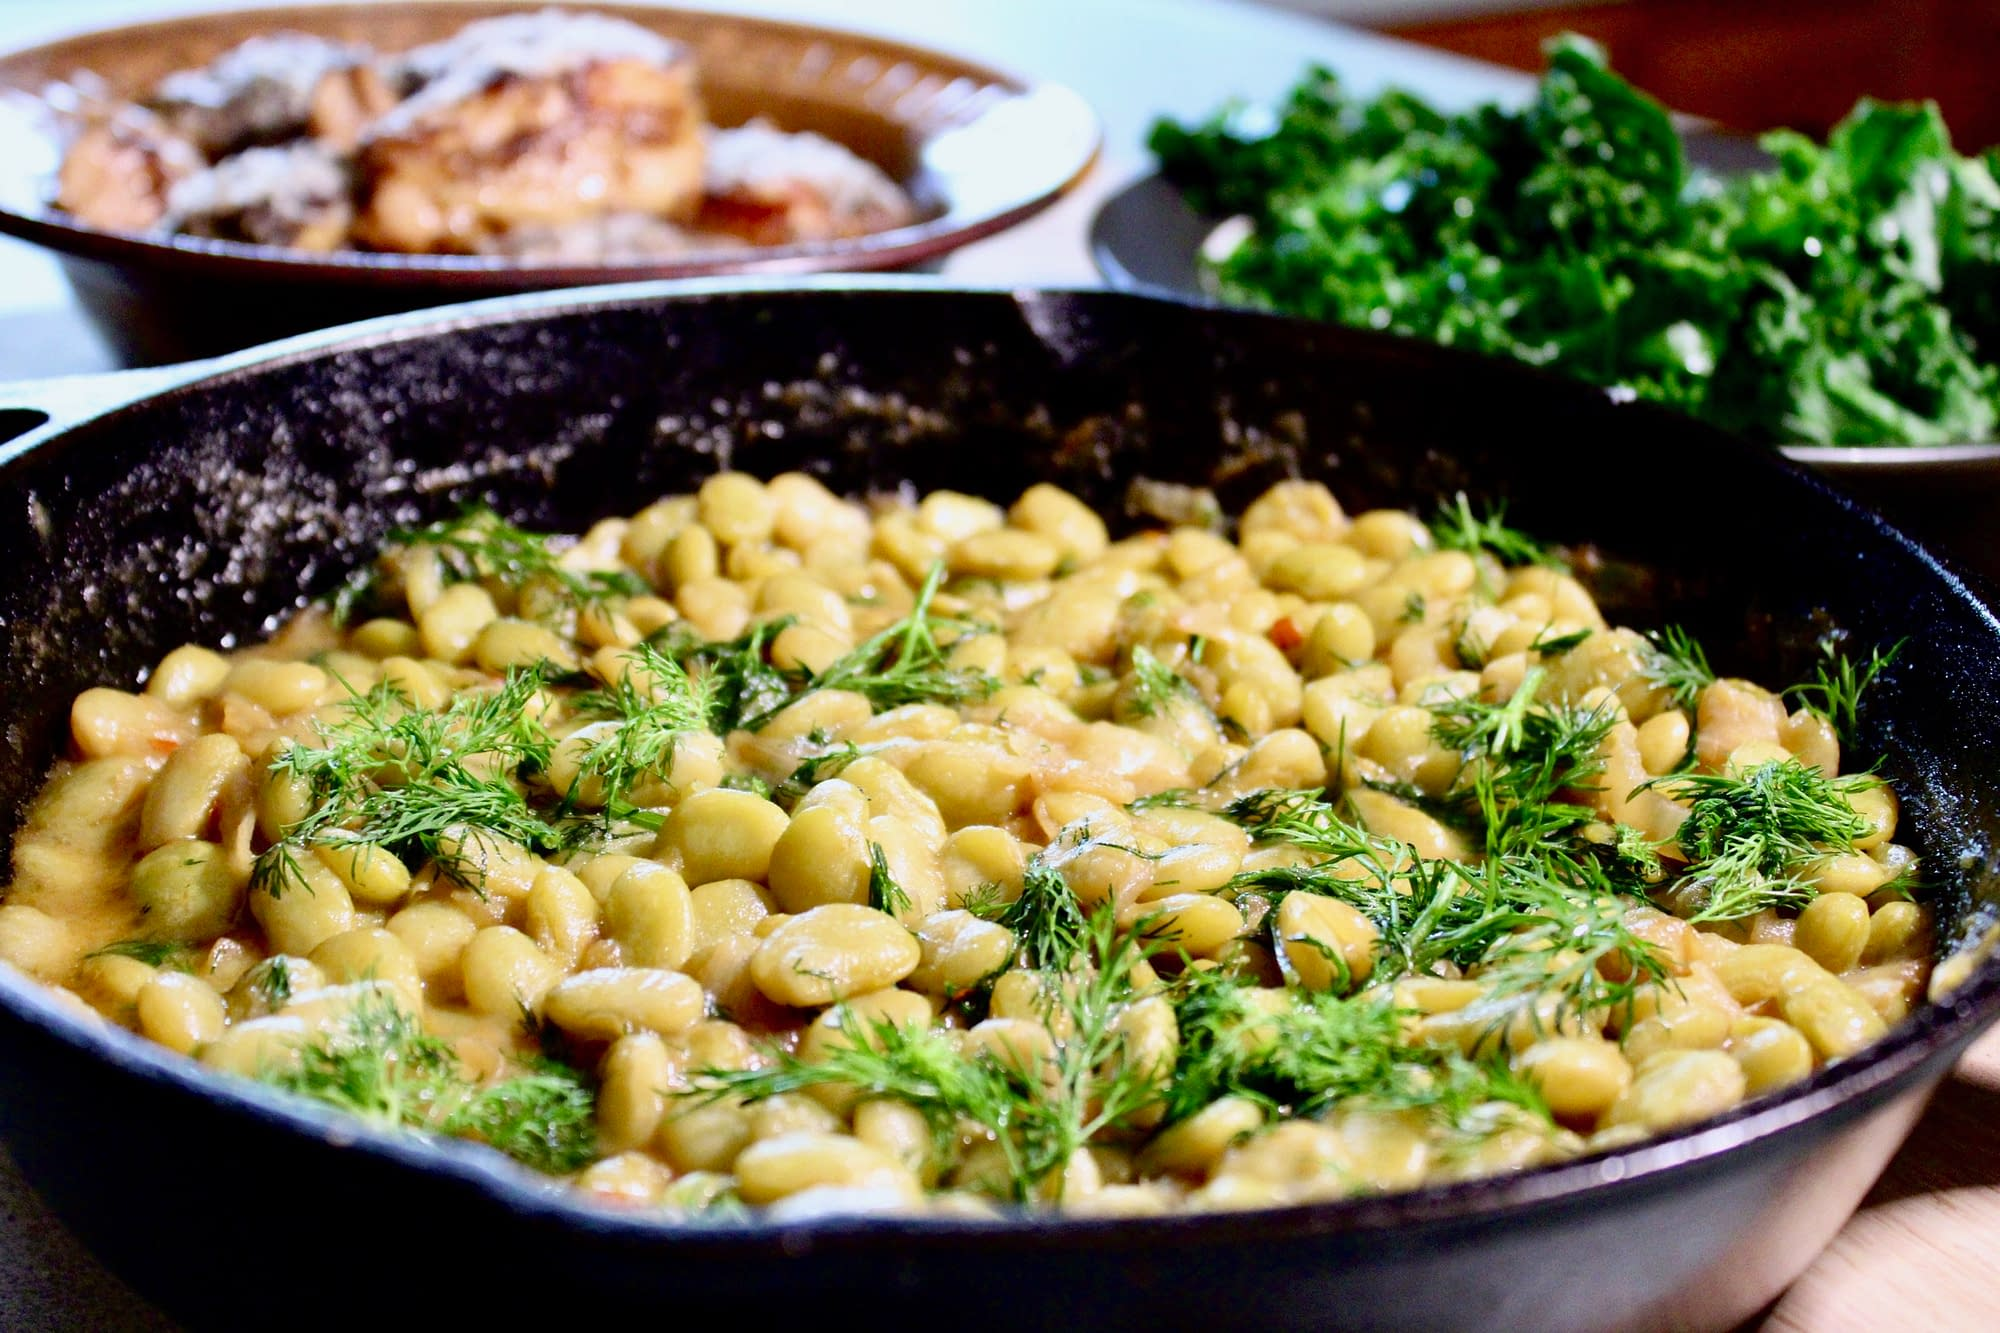 Shuggie's Totally Southern Lima Beans